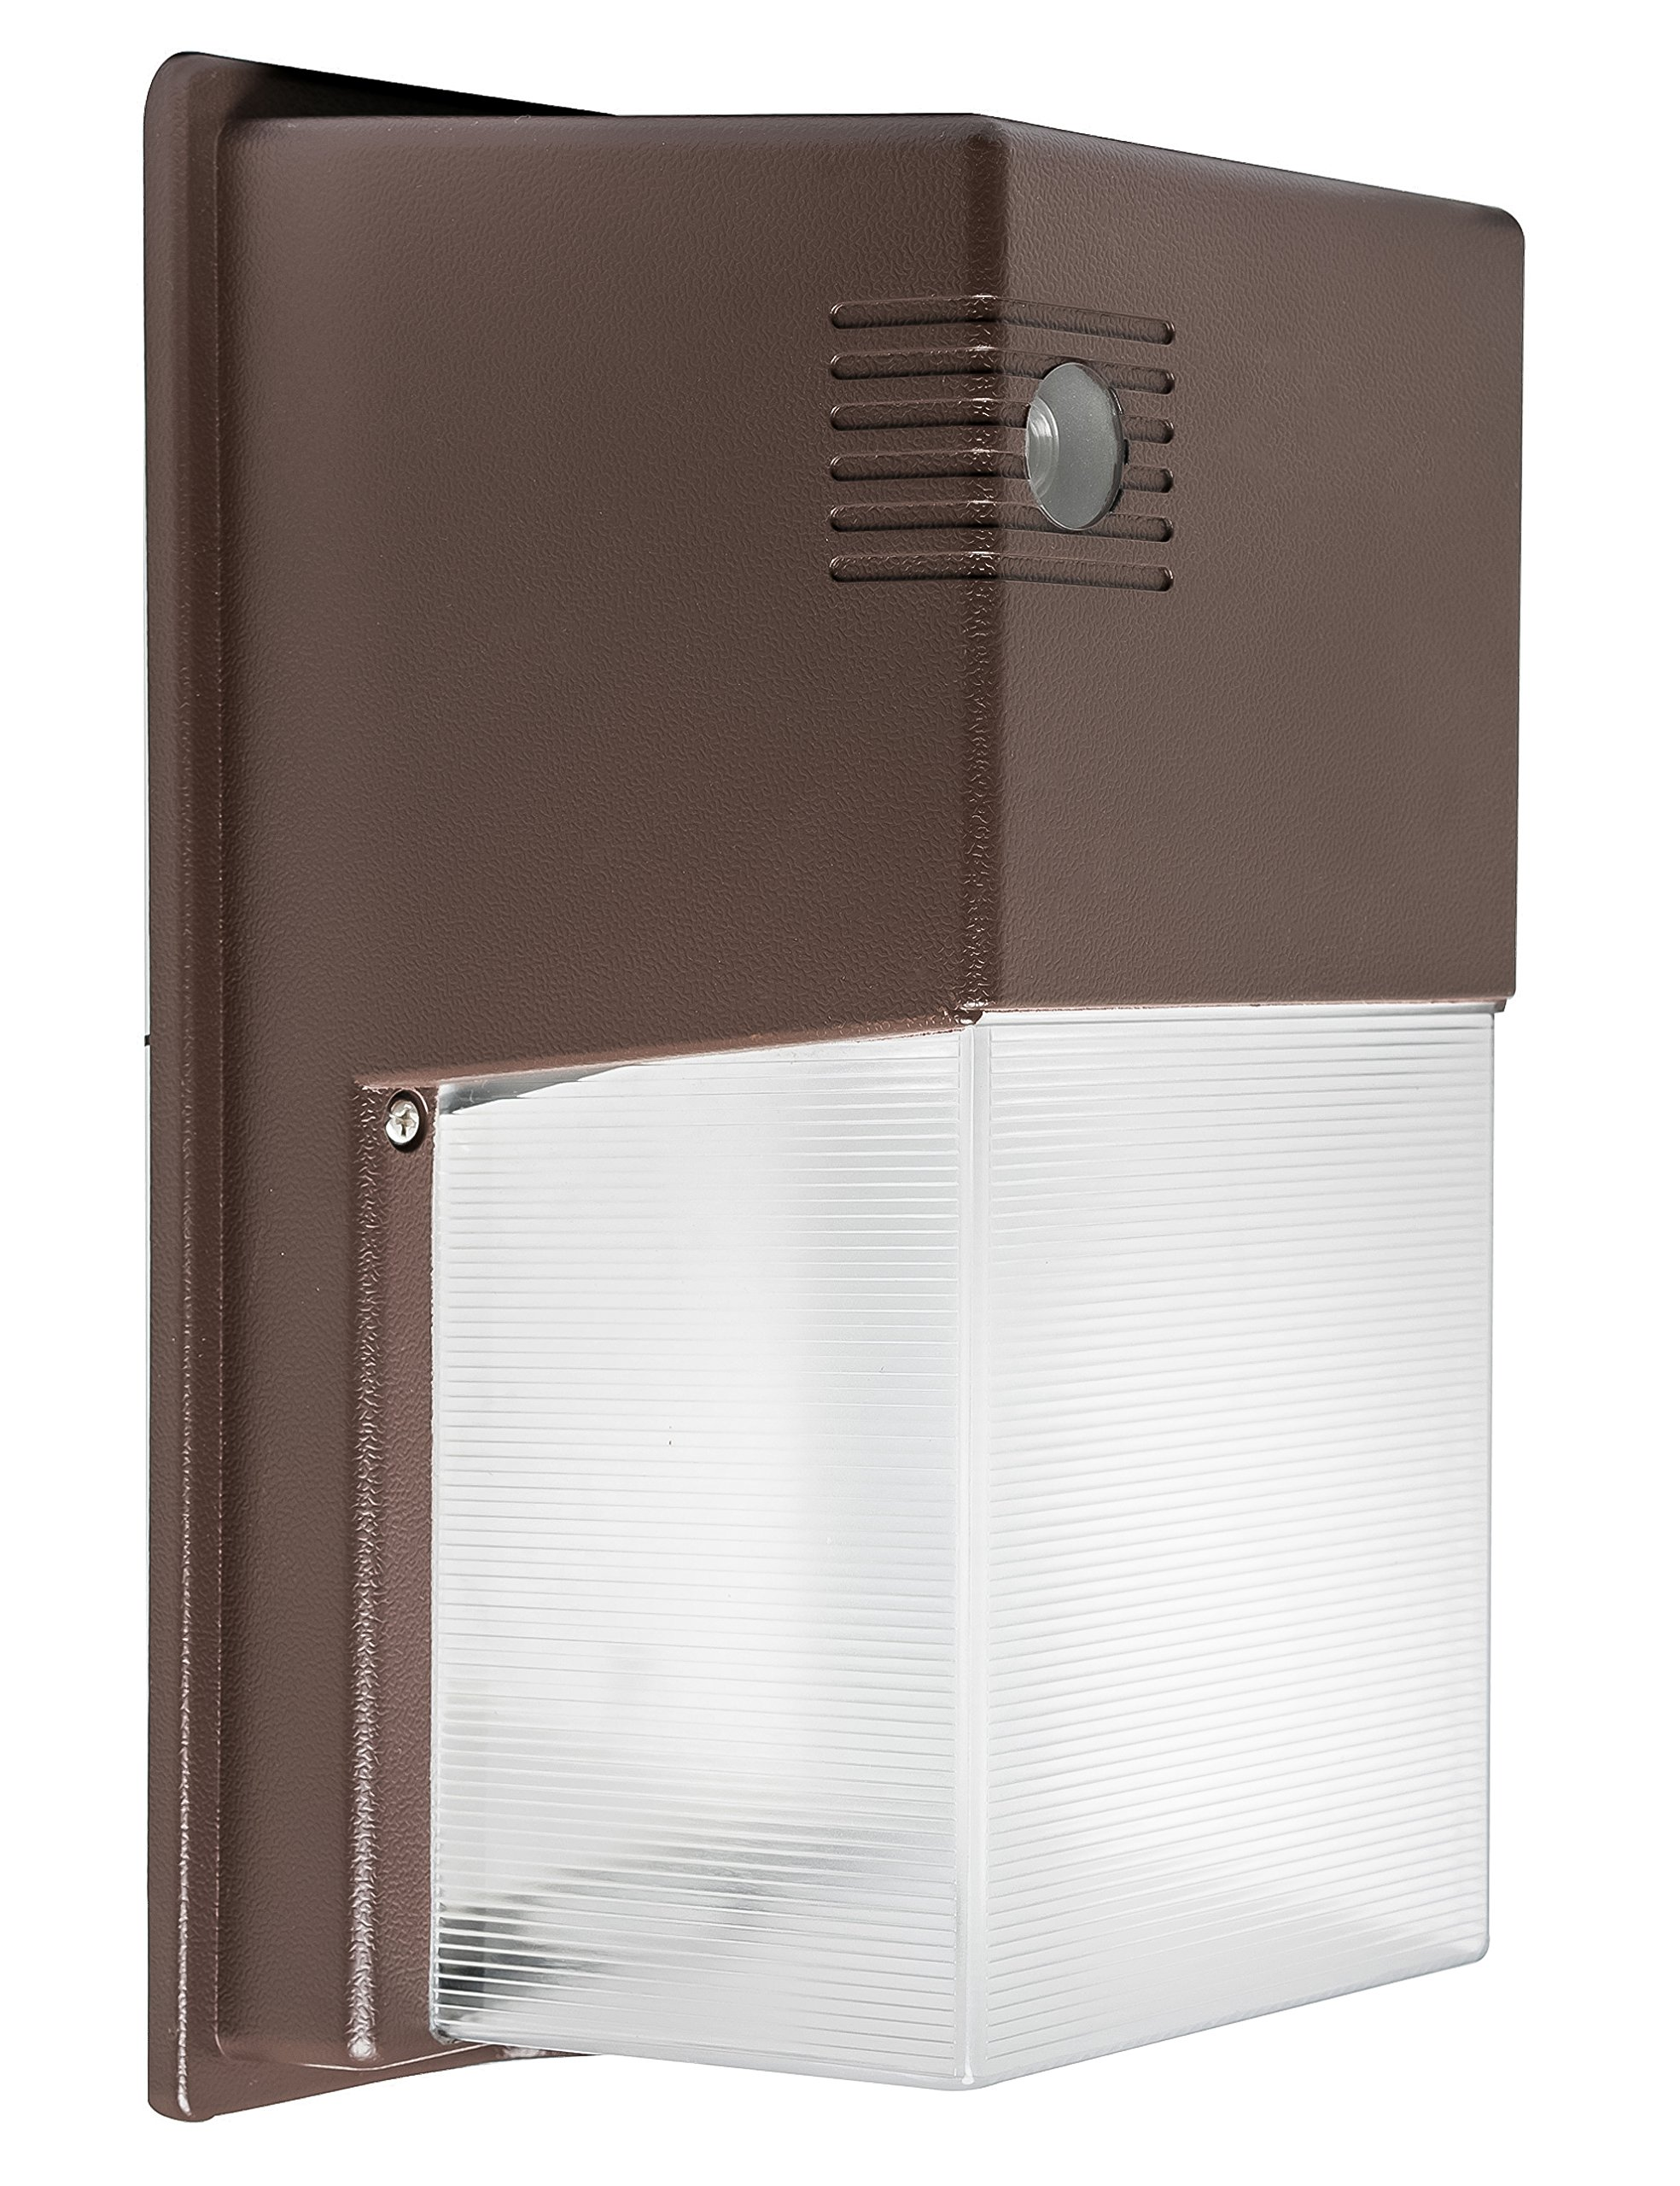 Westgate LSW-30WW LED Non Cut-Off Wall Pack 30W Outdoor Light, 120V-277V, Dark Bronze by Unknown